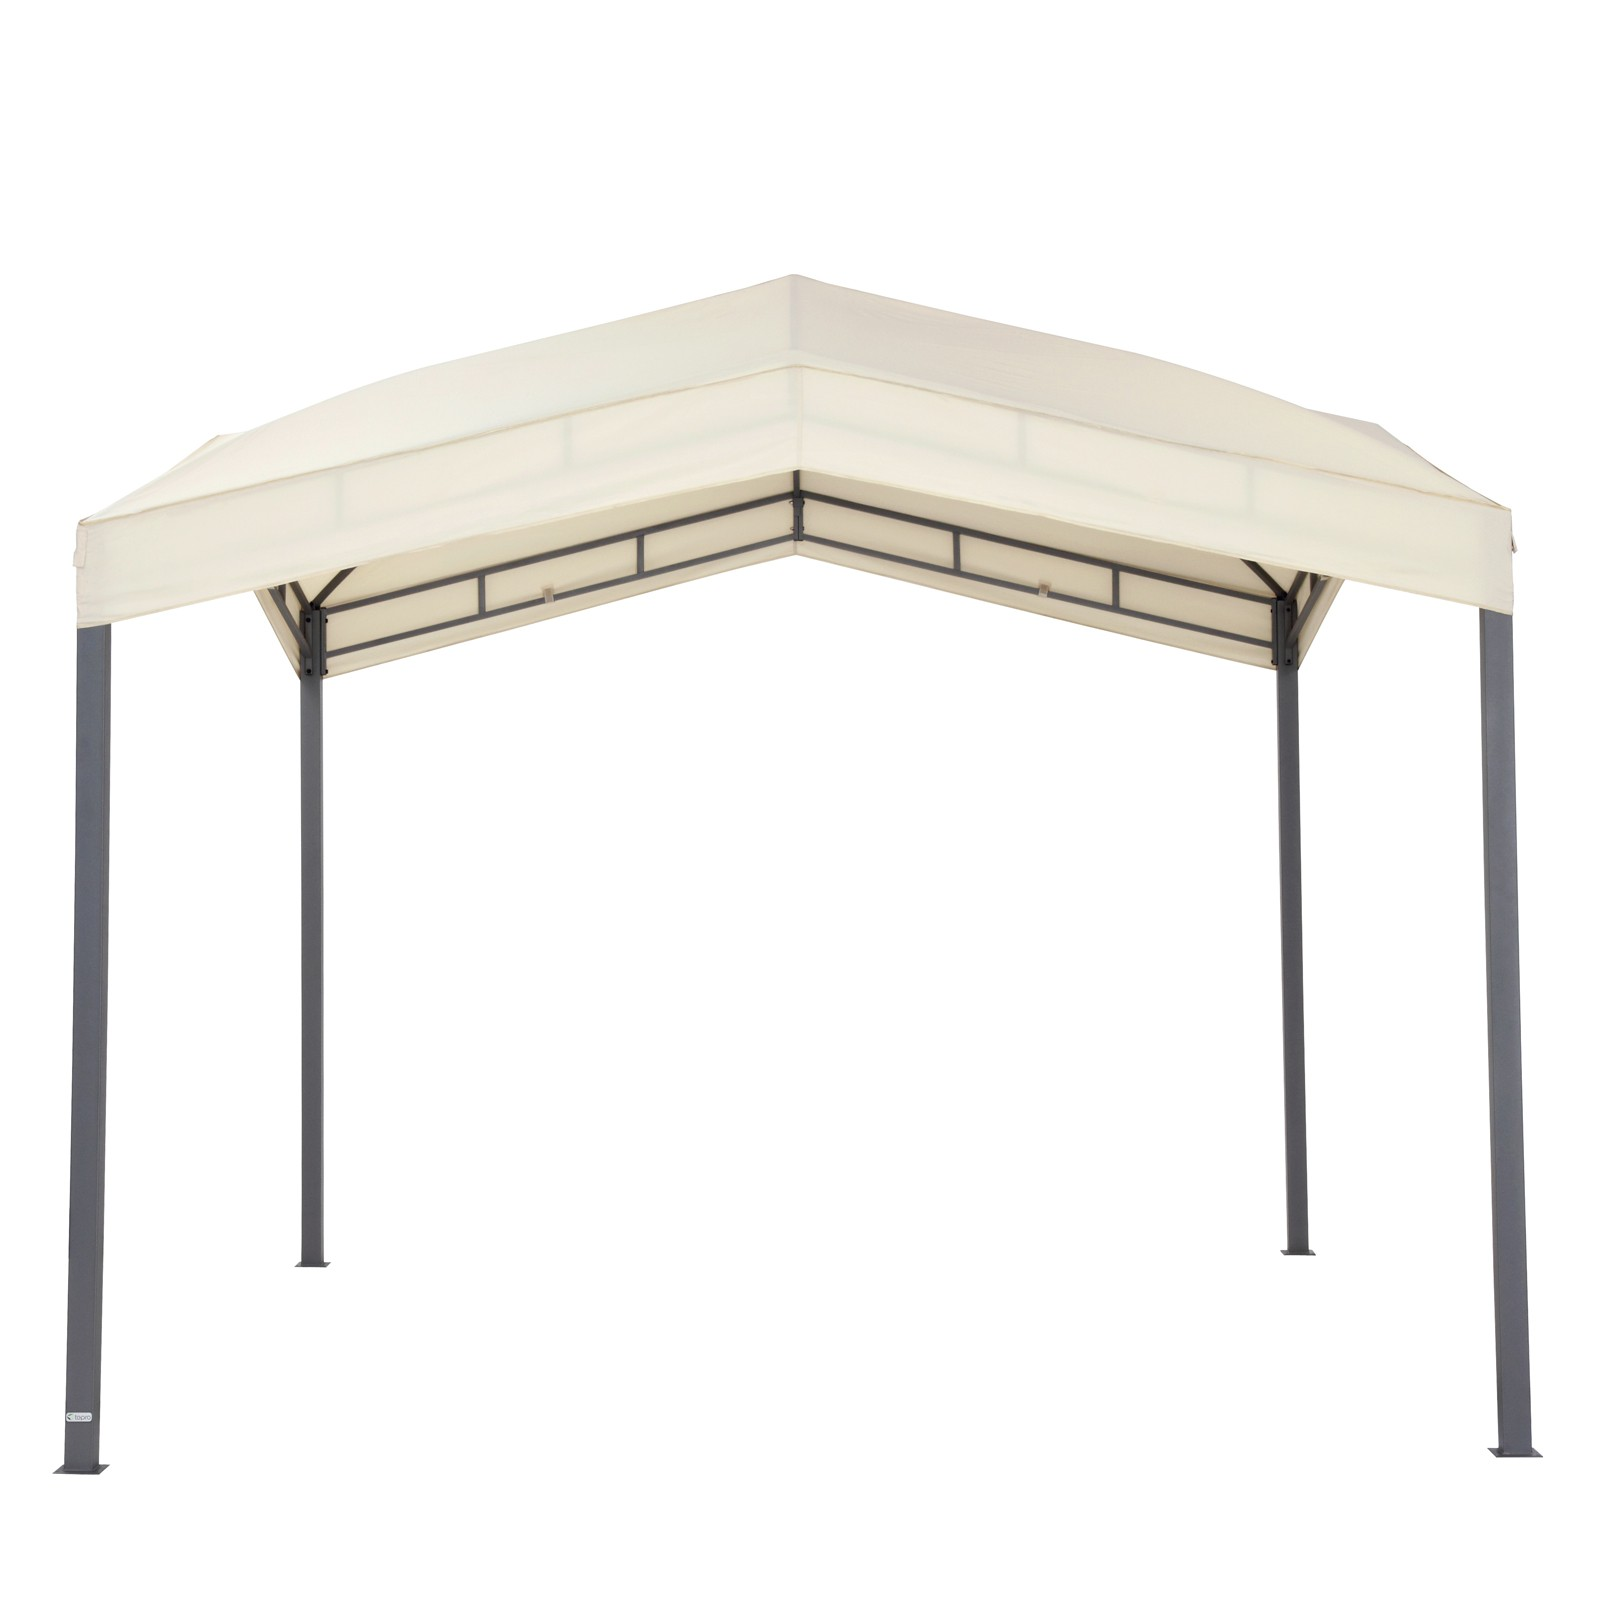 tepro pavillon festzelt 3x3 m gartenpavillon gartenzelt pavillion marabo beige ebay. Black Bedroom Furniture Sets. Home Design Ideas